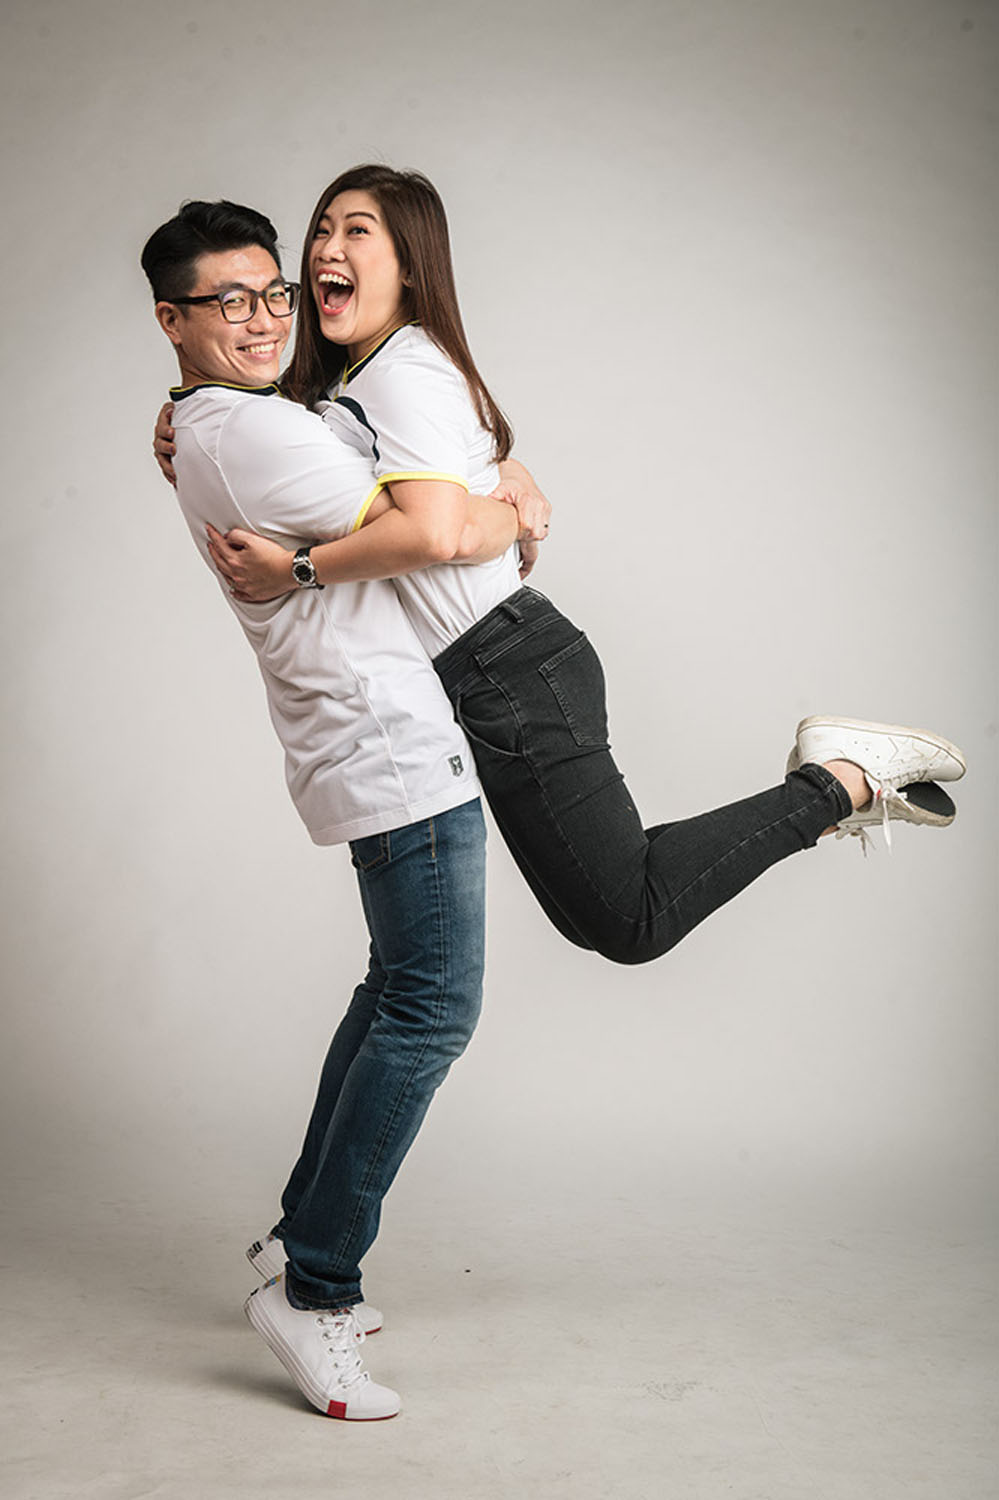 Couple Valentine Day photo shoot in a photography studio setting during a family photoshoot in Singapore, White Room Studio